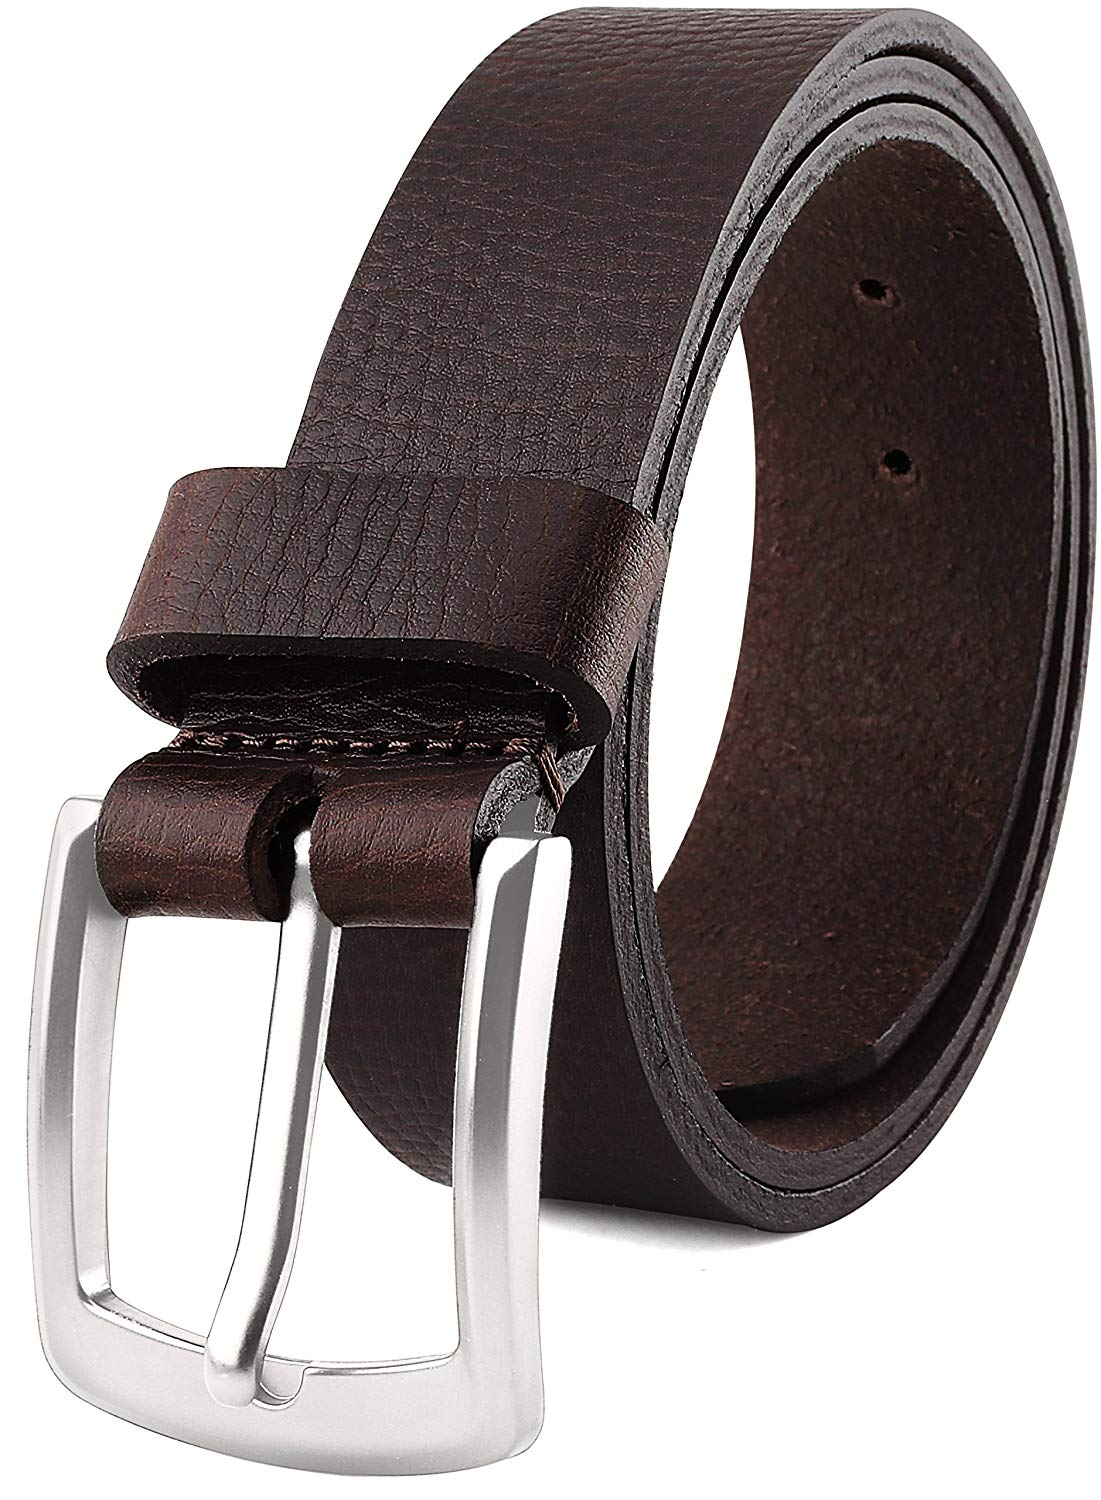 "Men's Casual Full Grain Classic Leather Dress Belt For Jeans,1.5"" Wide, USA"